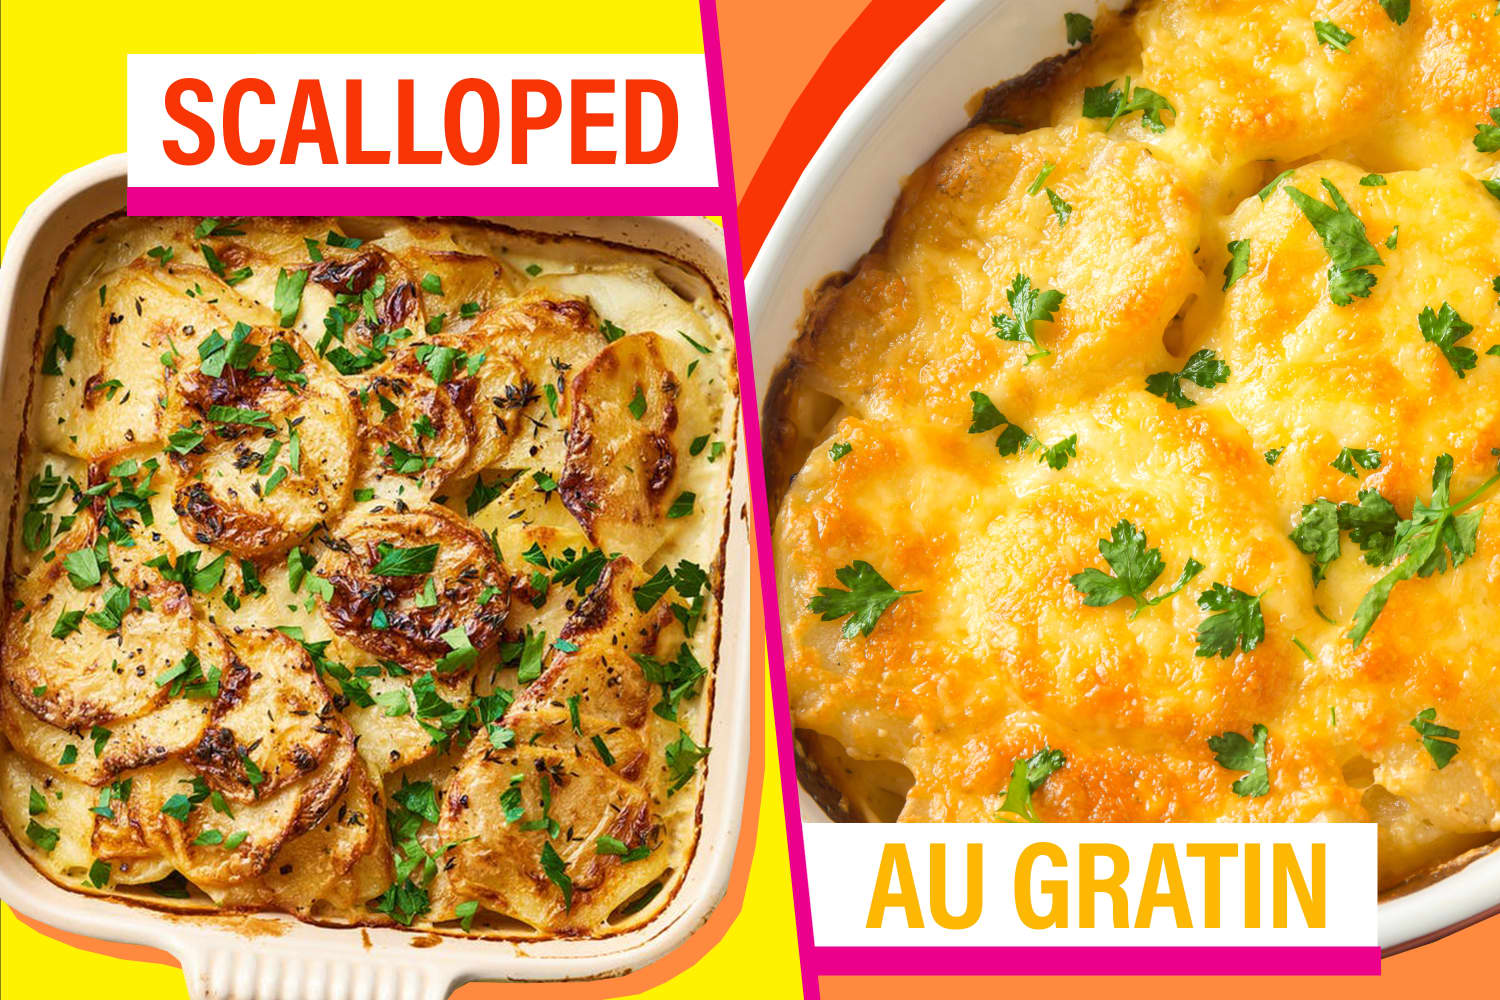 What's the Difference Between Scalloped and Au Gratin Potatoes?